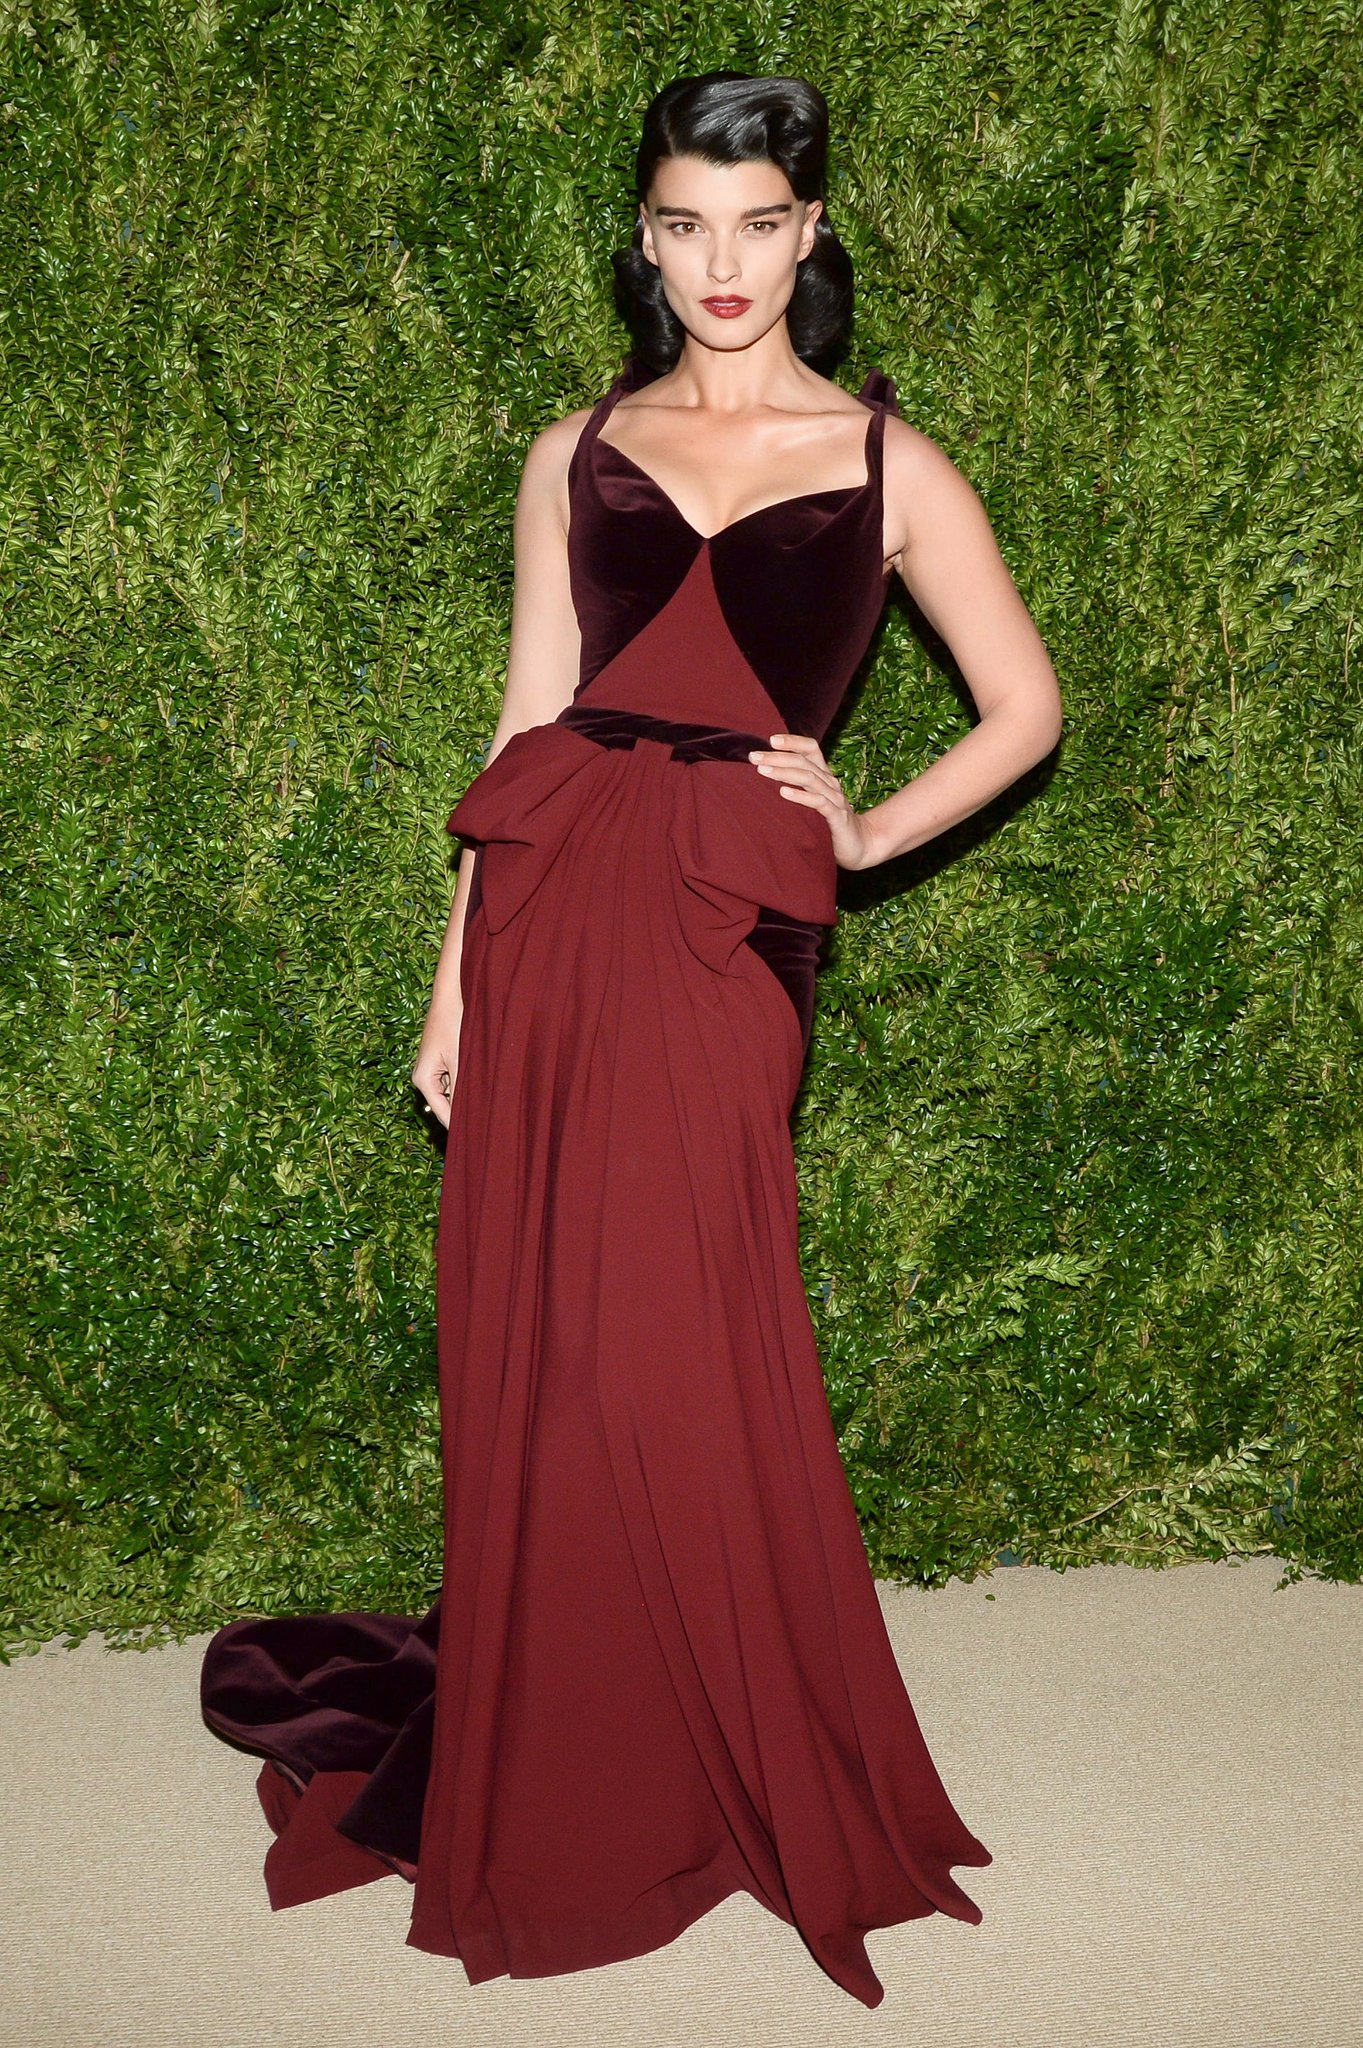 Crystal Renn at the CFDA/Vogue Fashion Fund Awards.